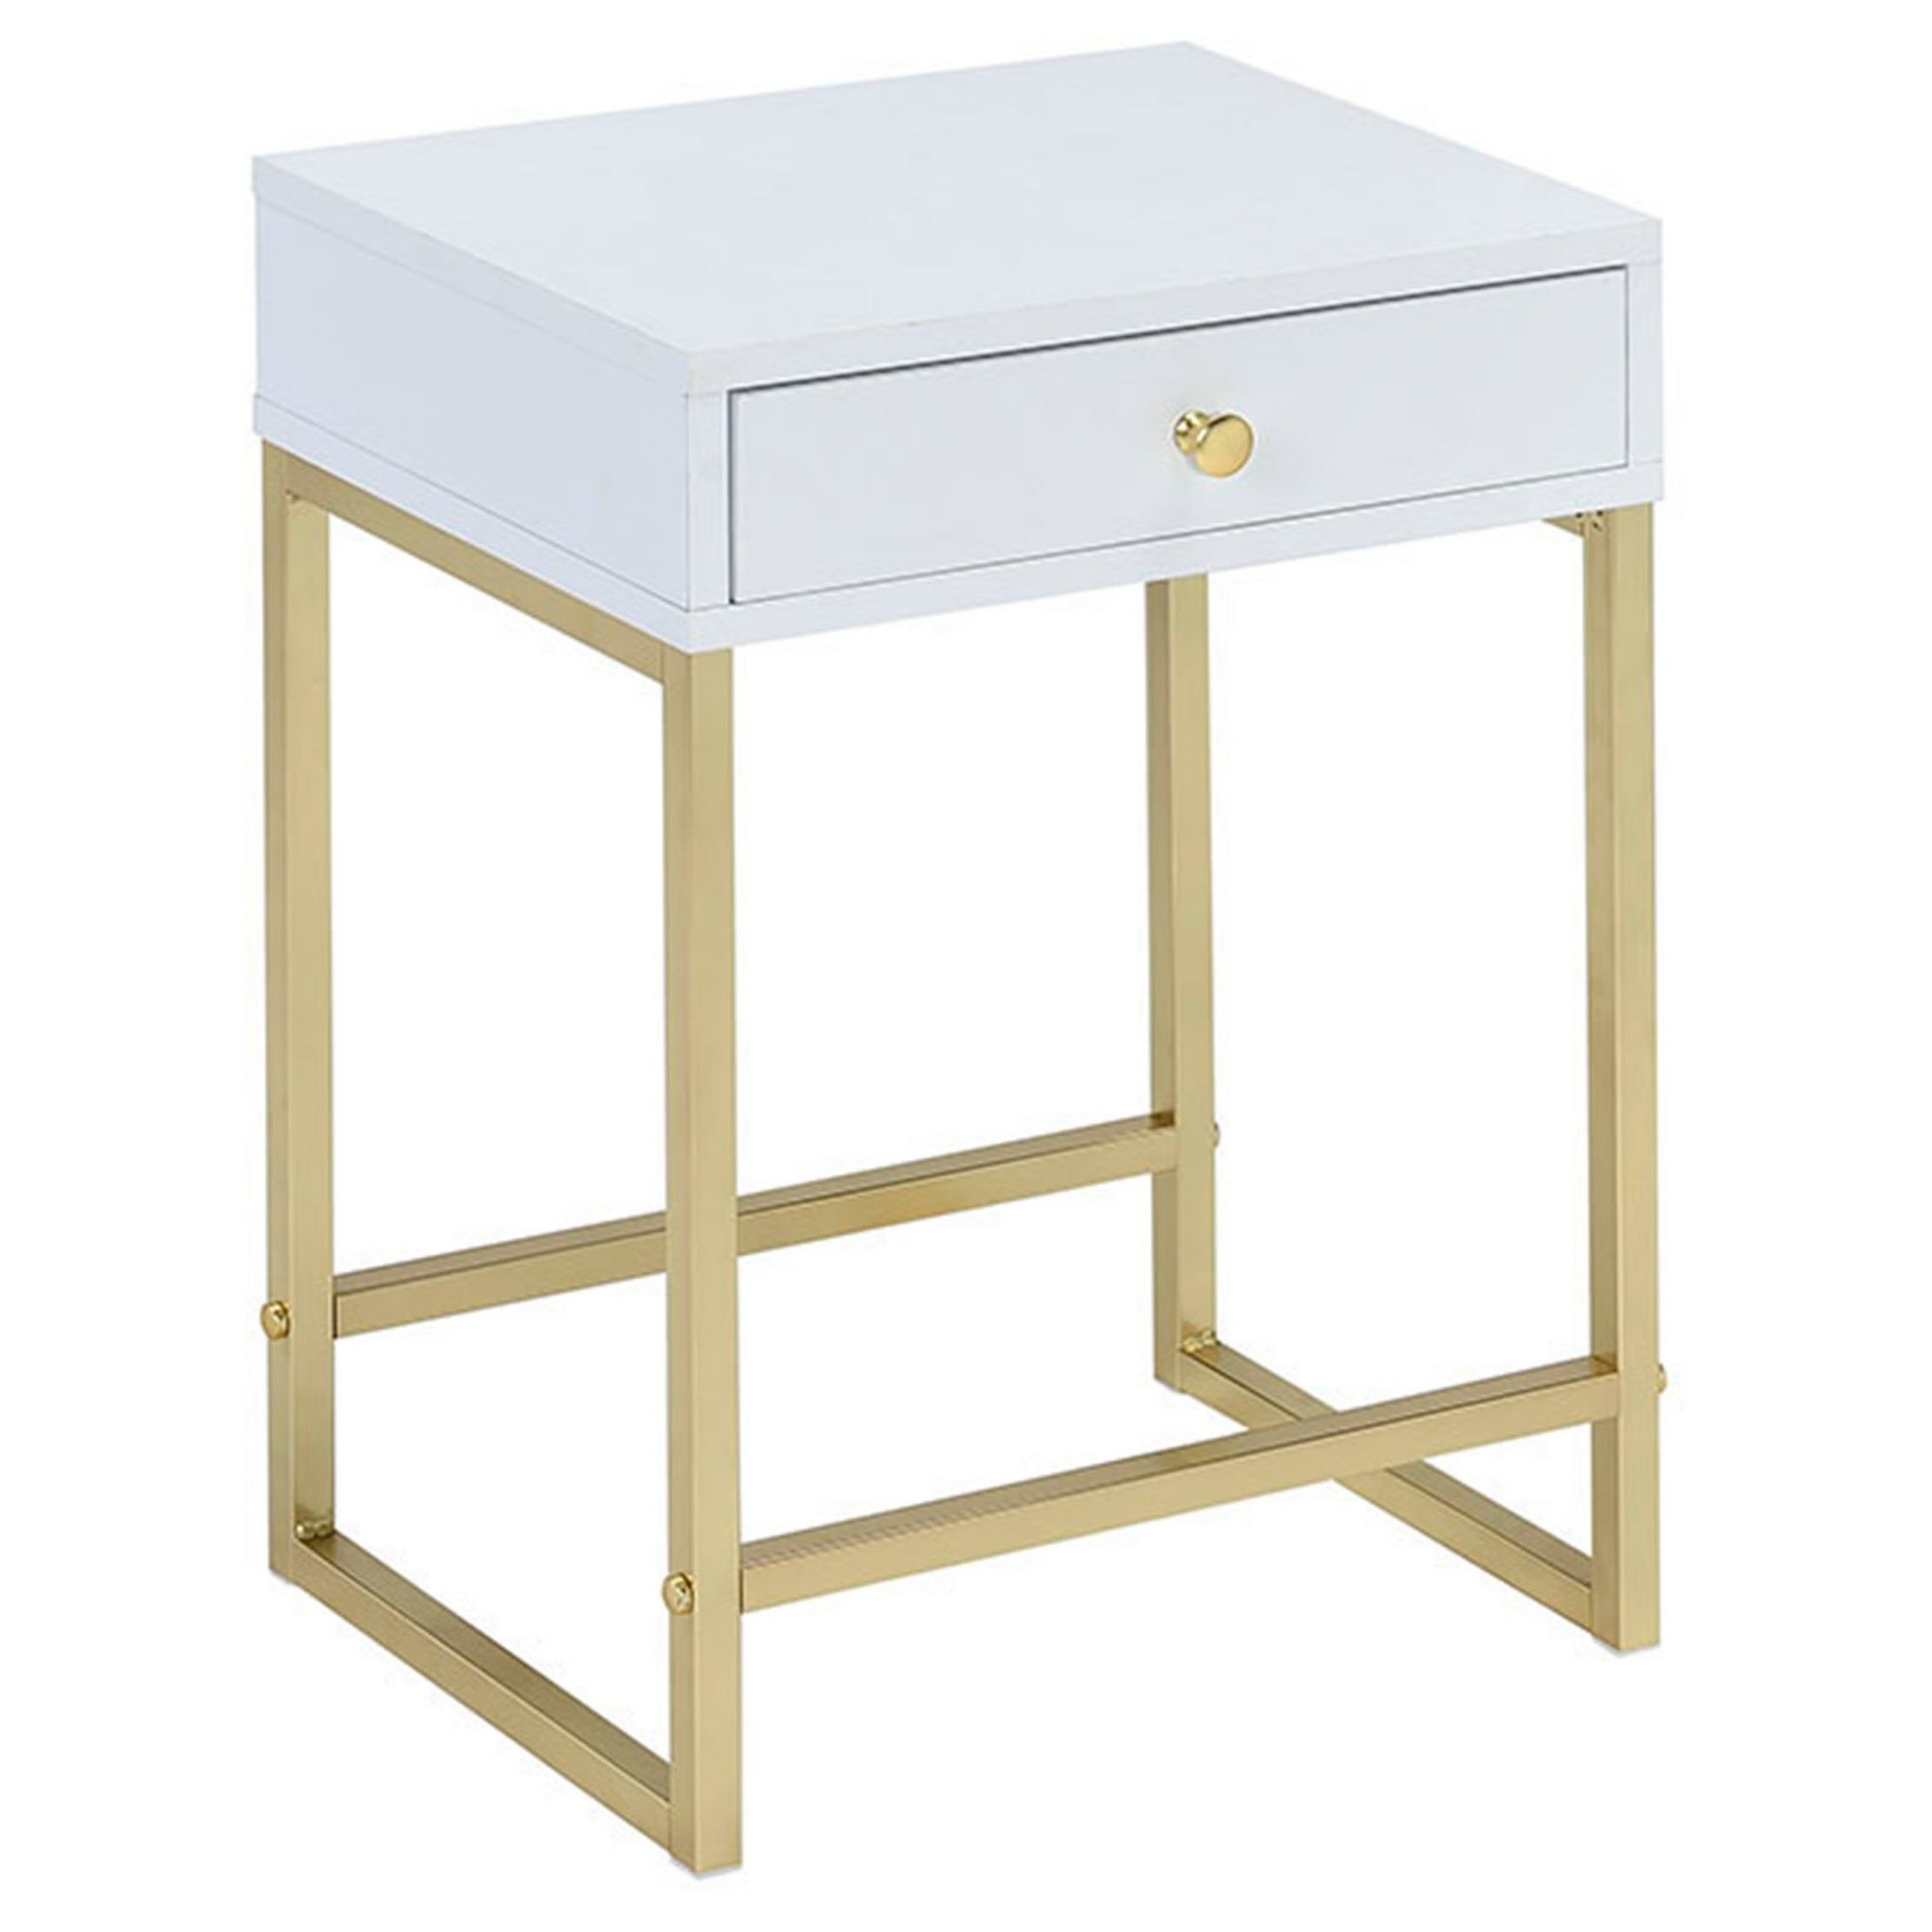 end table white brass accent tables products parquet target hand painted drawers colorful side round patio chair drop leaf concrete contemporary furniture edmonton ethan allen art